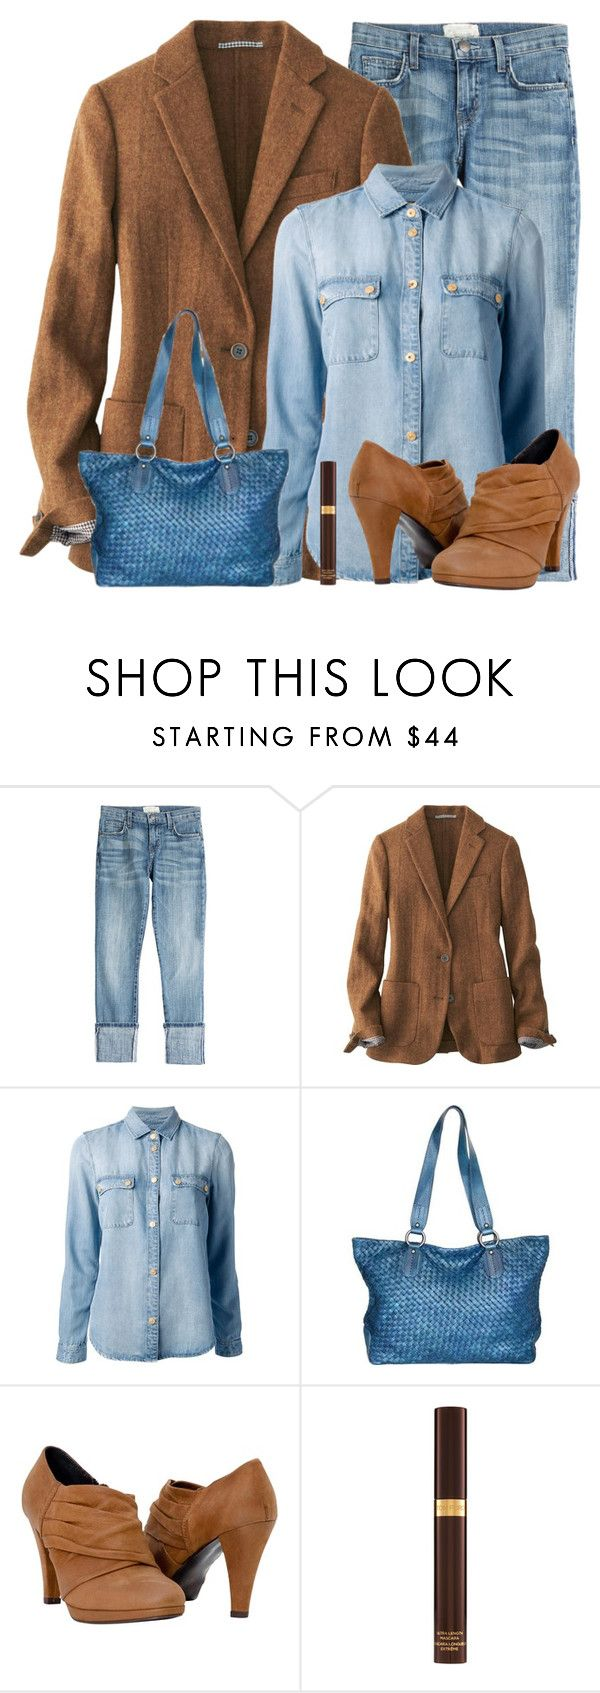 """""""Fall"""" by vicky-soleil ❤ liked on Polyvore featuring Current/Elliott, Uniqlo, 7 For All Mankind, Nino Bossi Handbags and Tom Ford"""